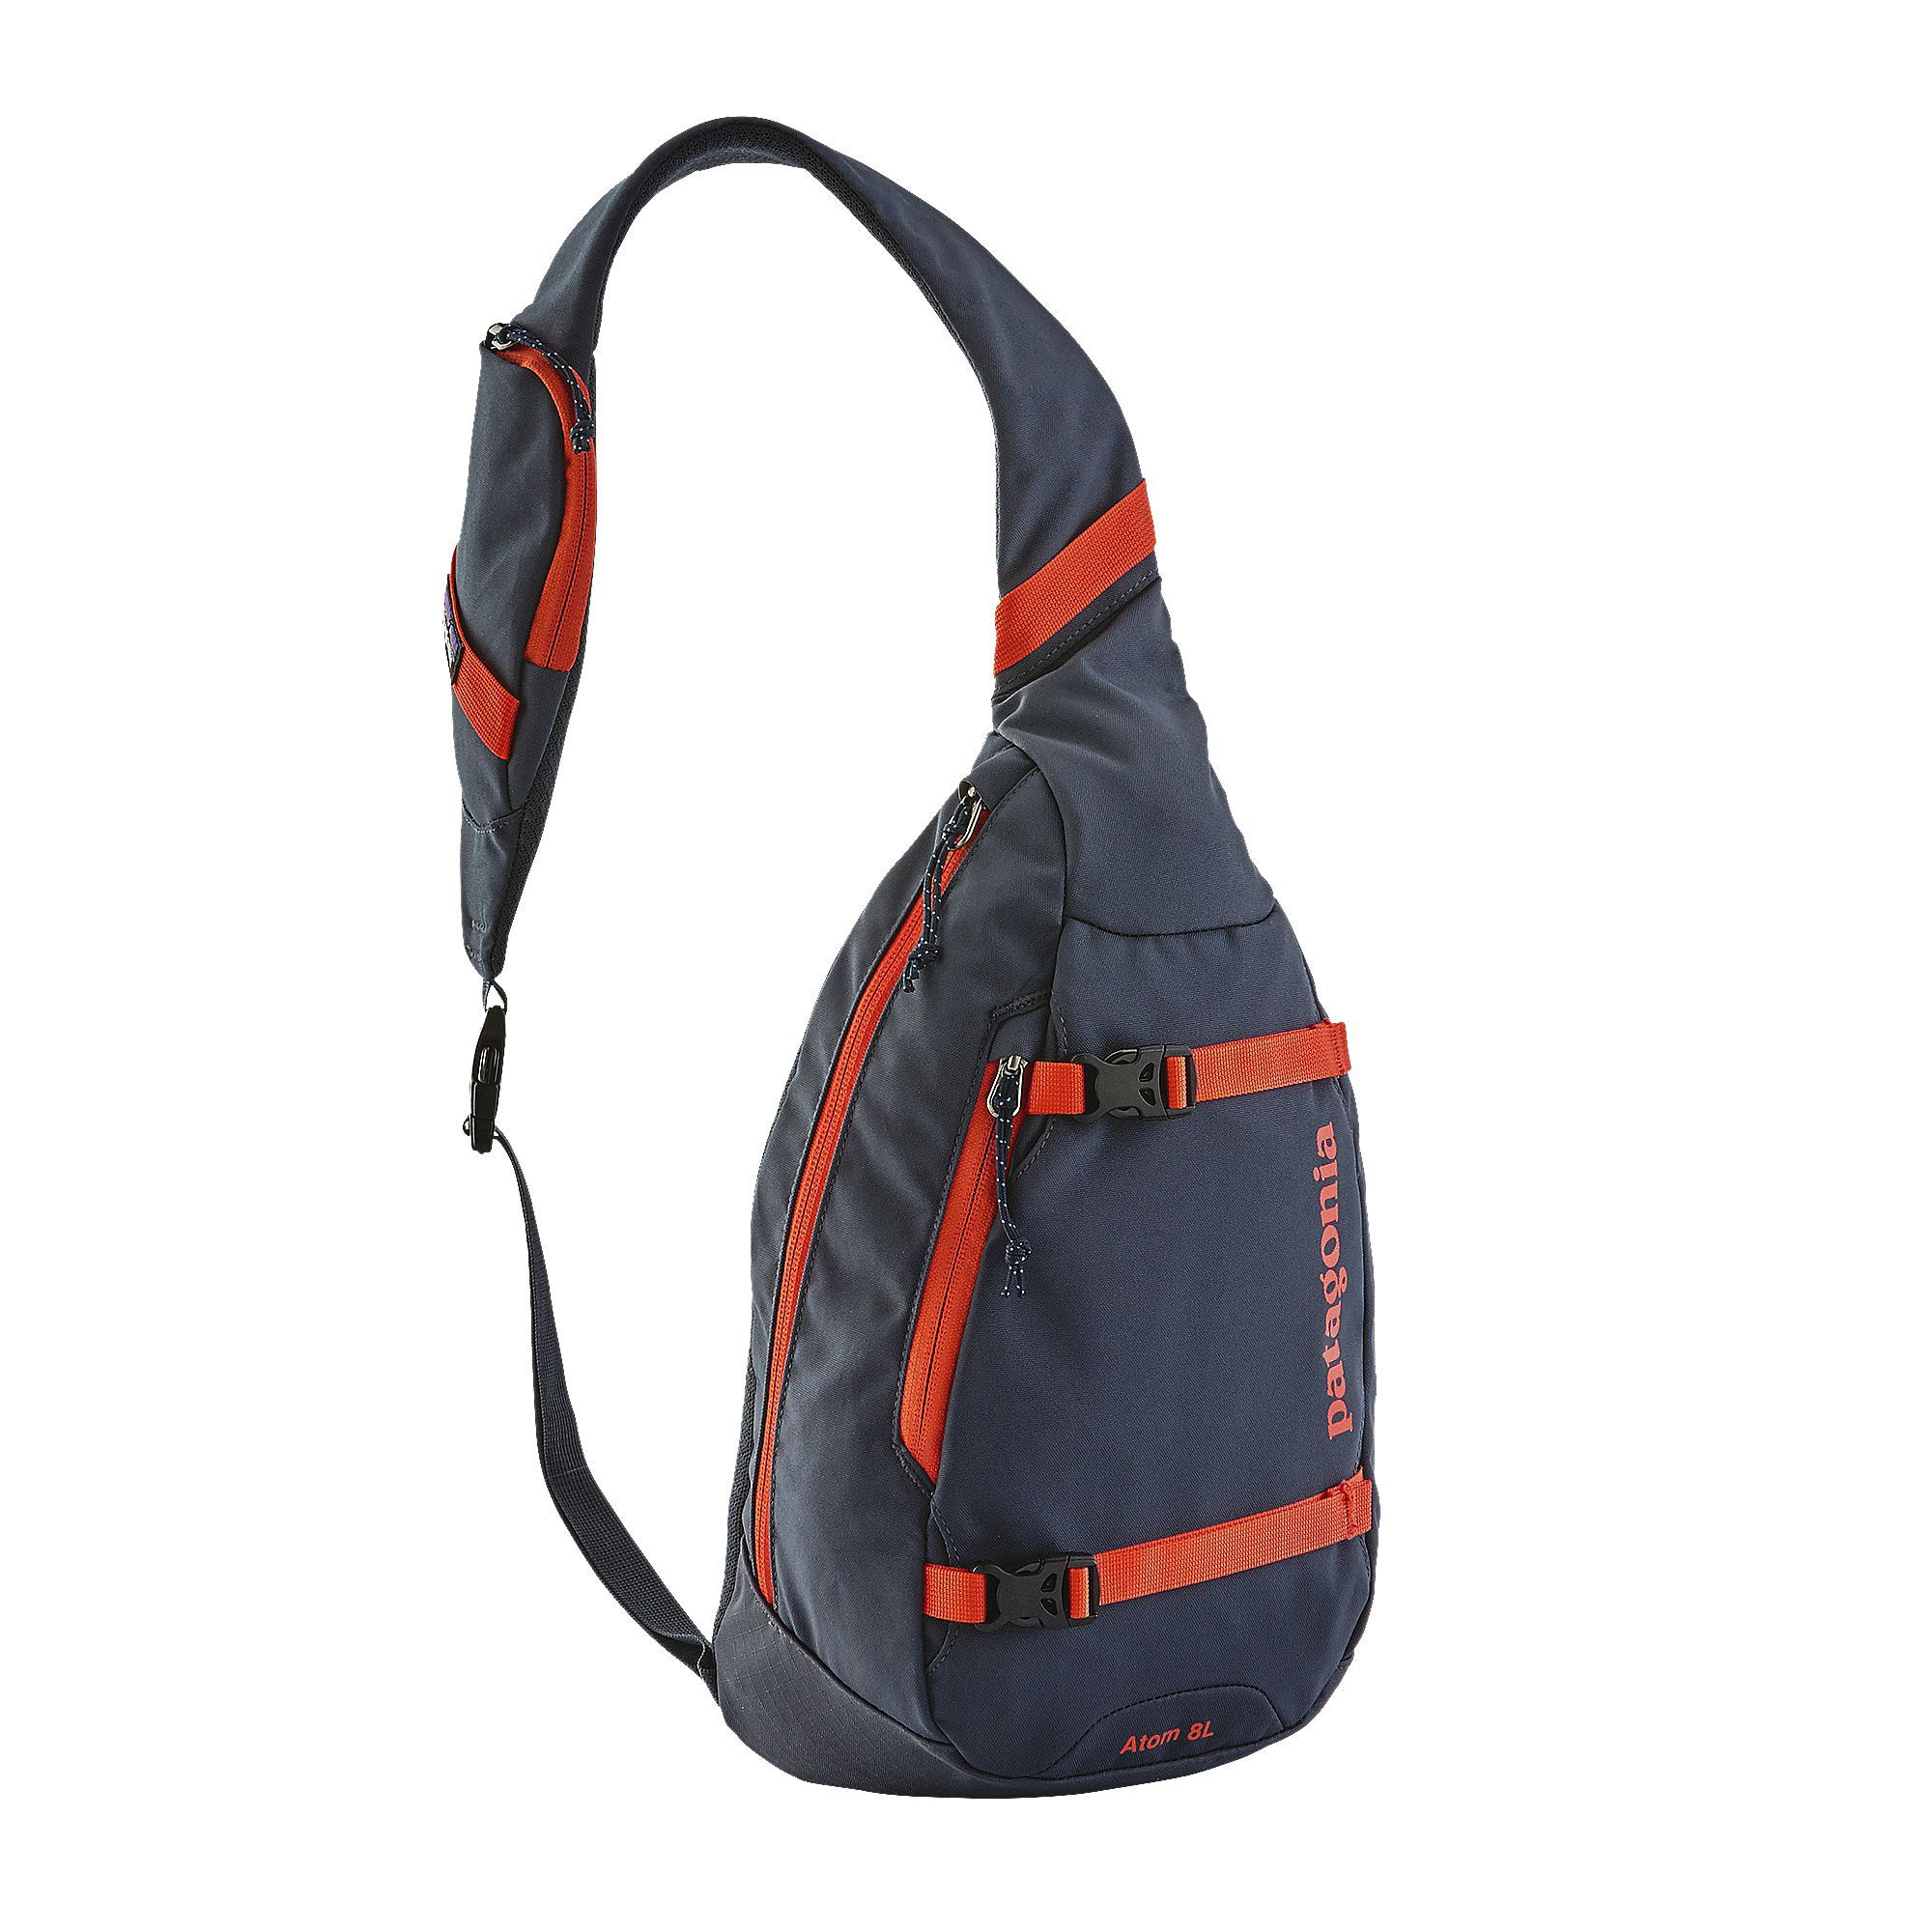 DETAILS Teardrop shape provides backpack support with the easy access of a  single-strap design For biking and hiking dc93992658b9c